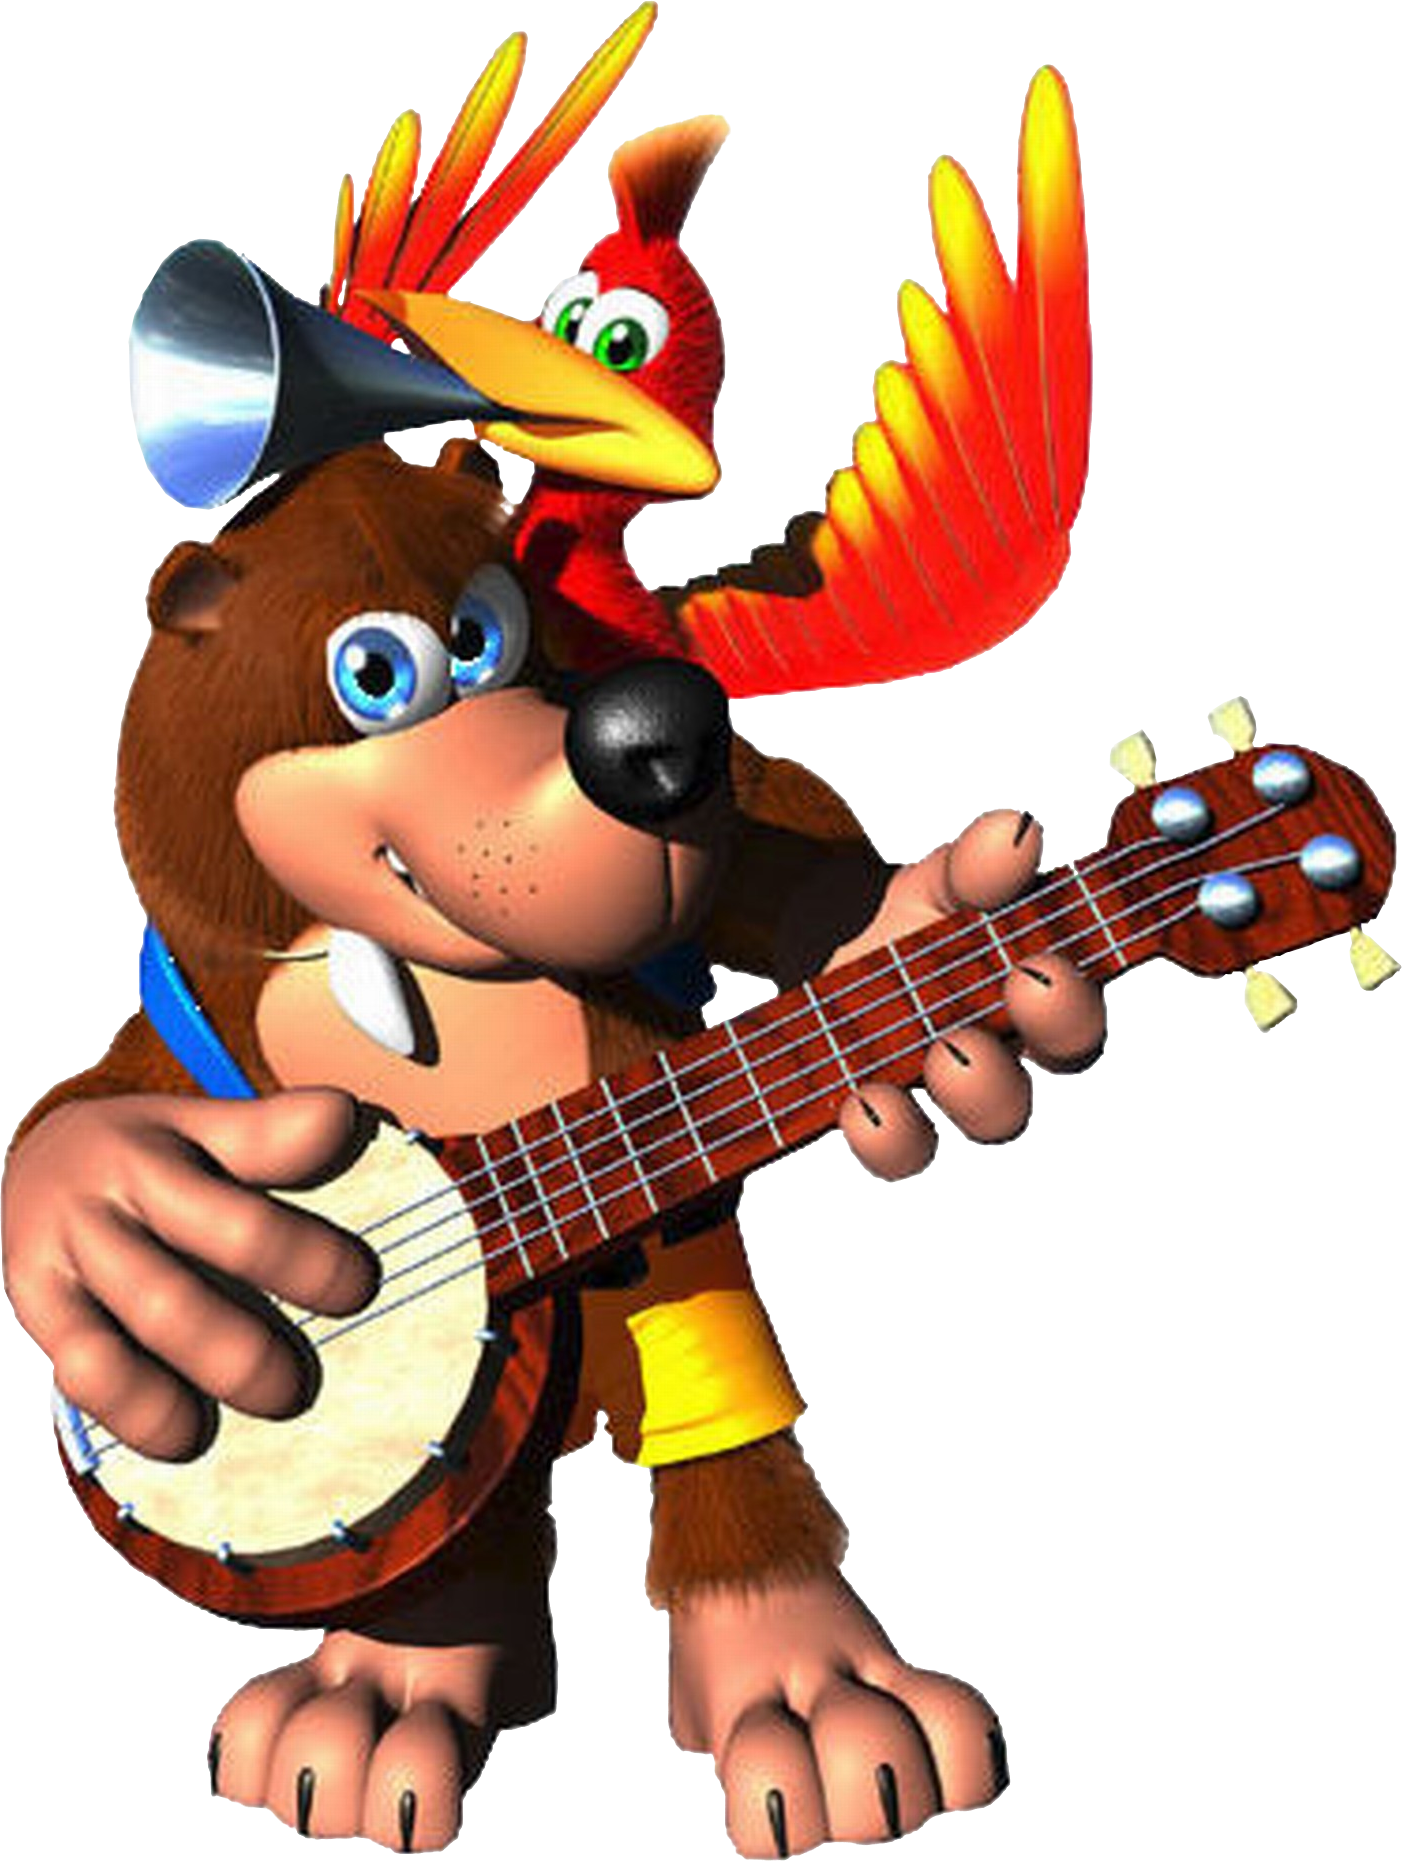 banjo kazooie - photo #15